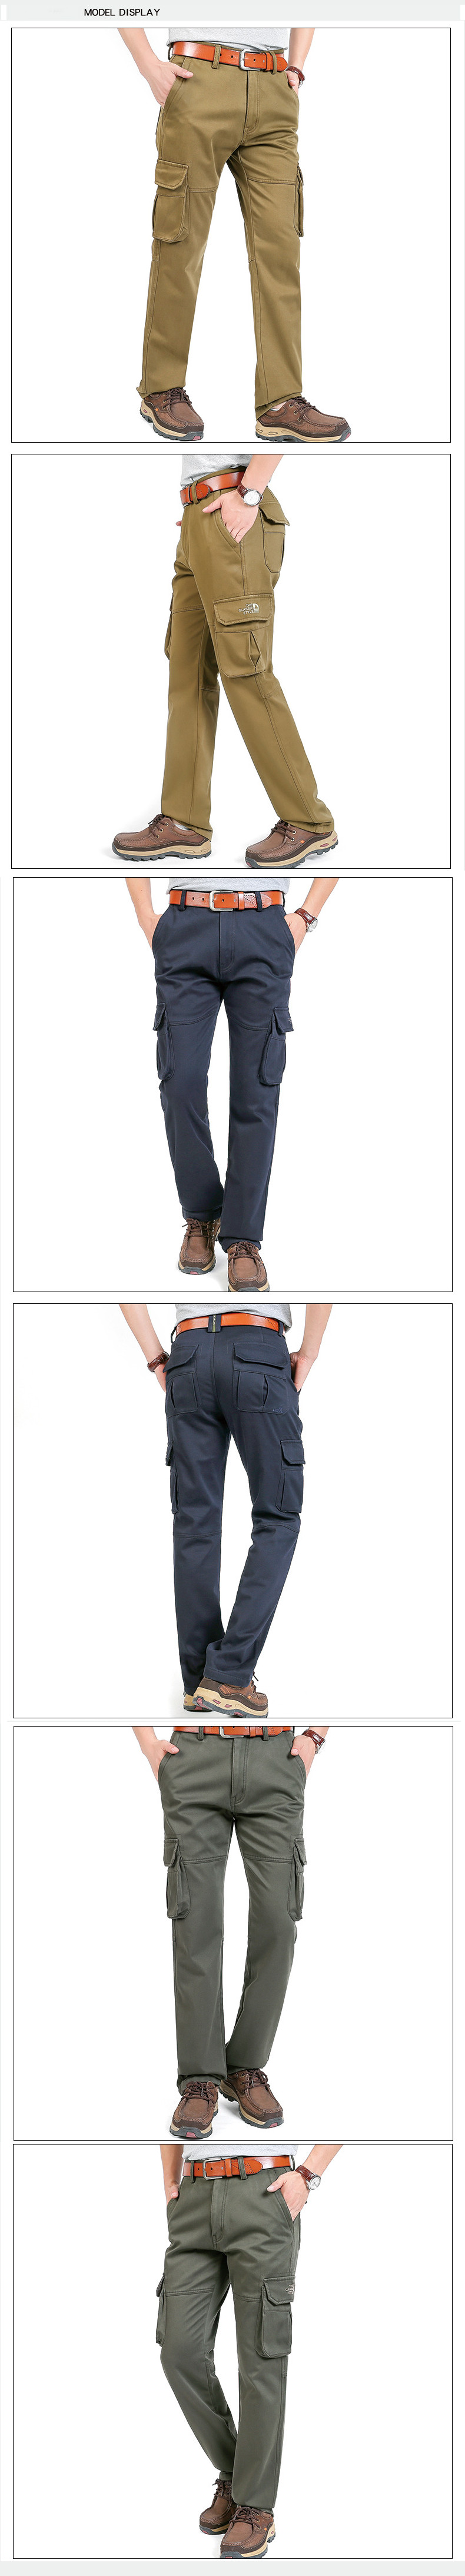 Winter Warm Fleece Lining Cotton Cargo Pants Men's Casual Middle-waisted Straight Baggy Overalls